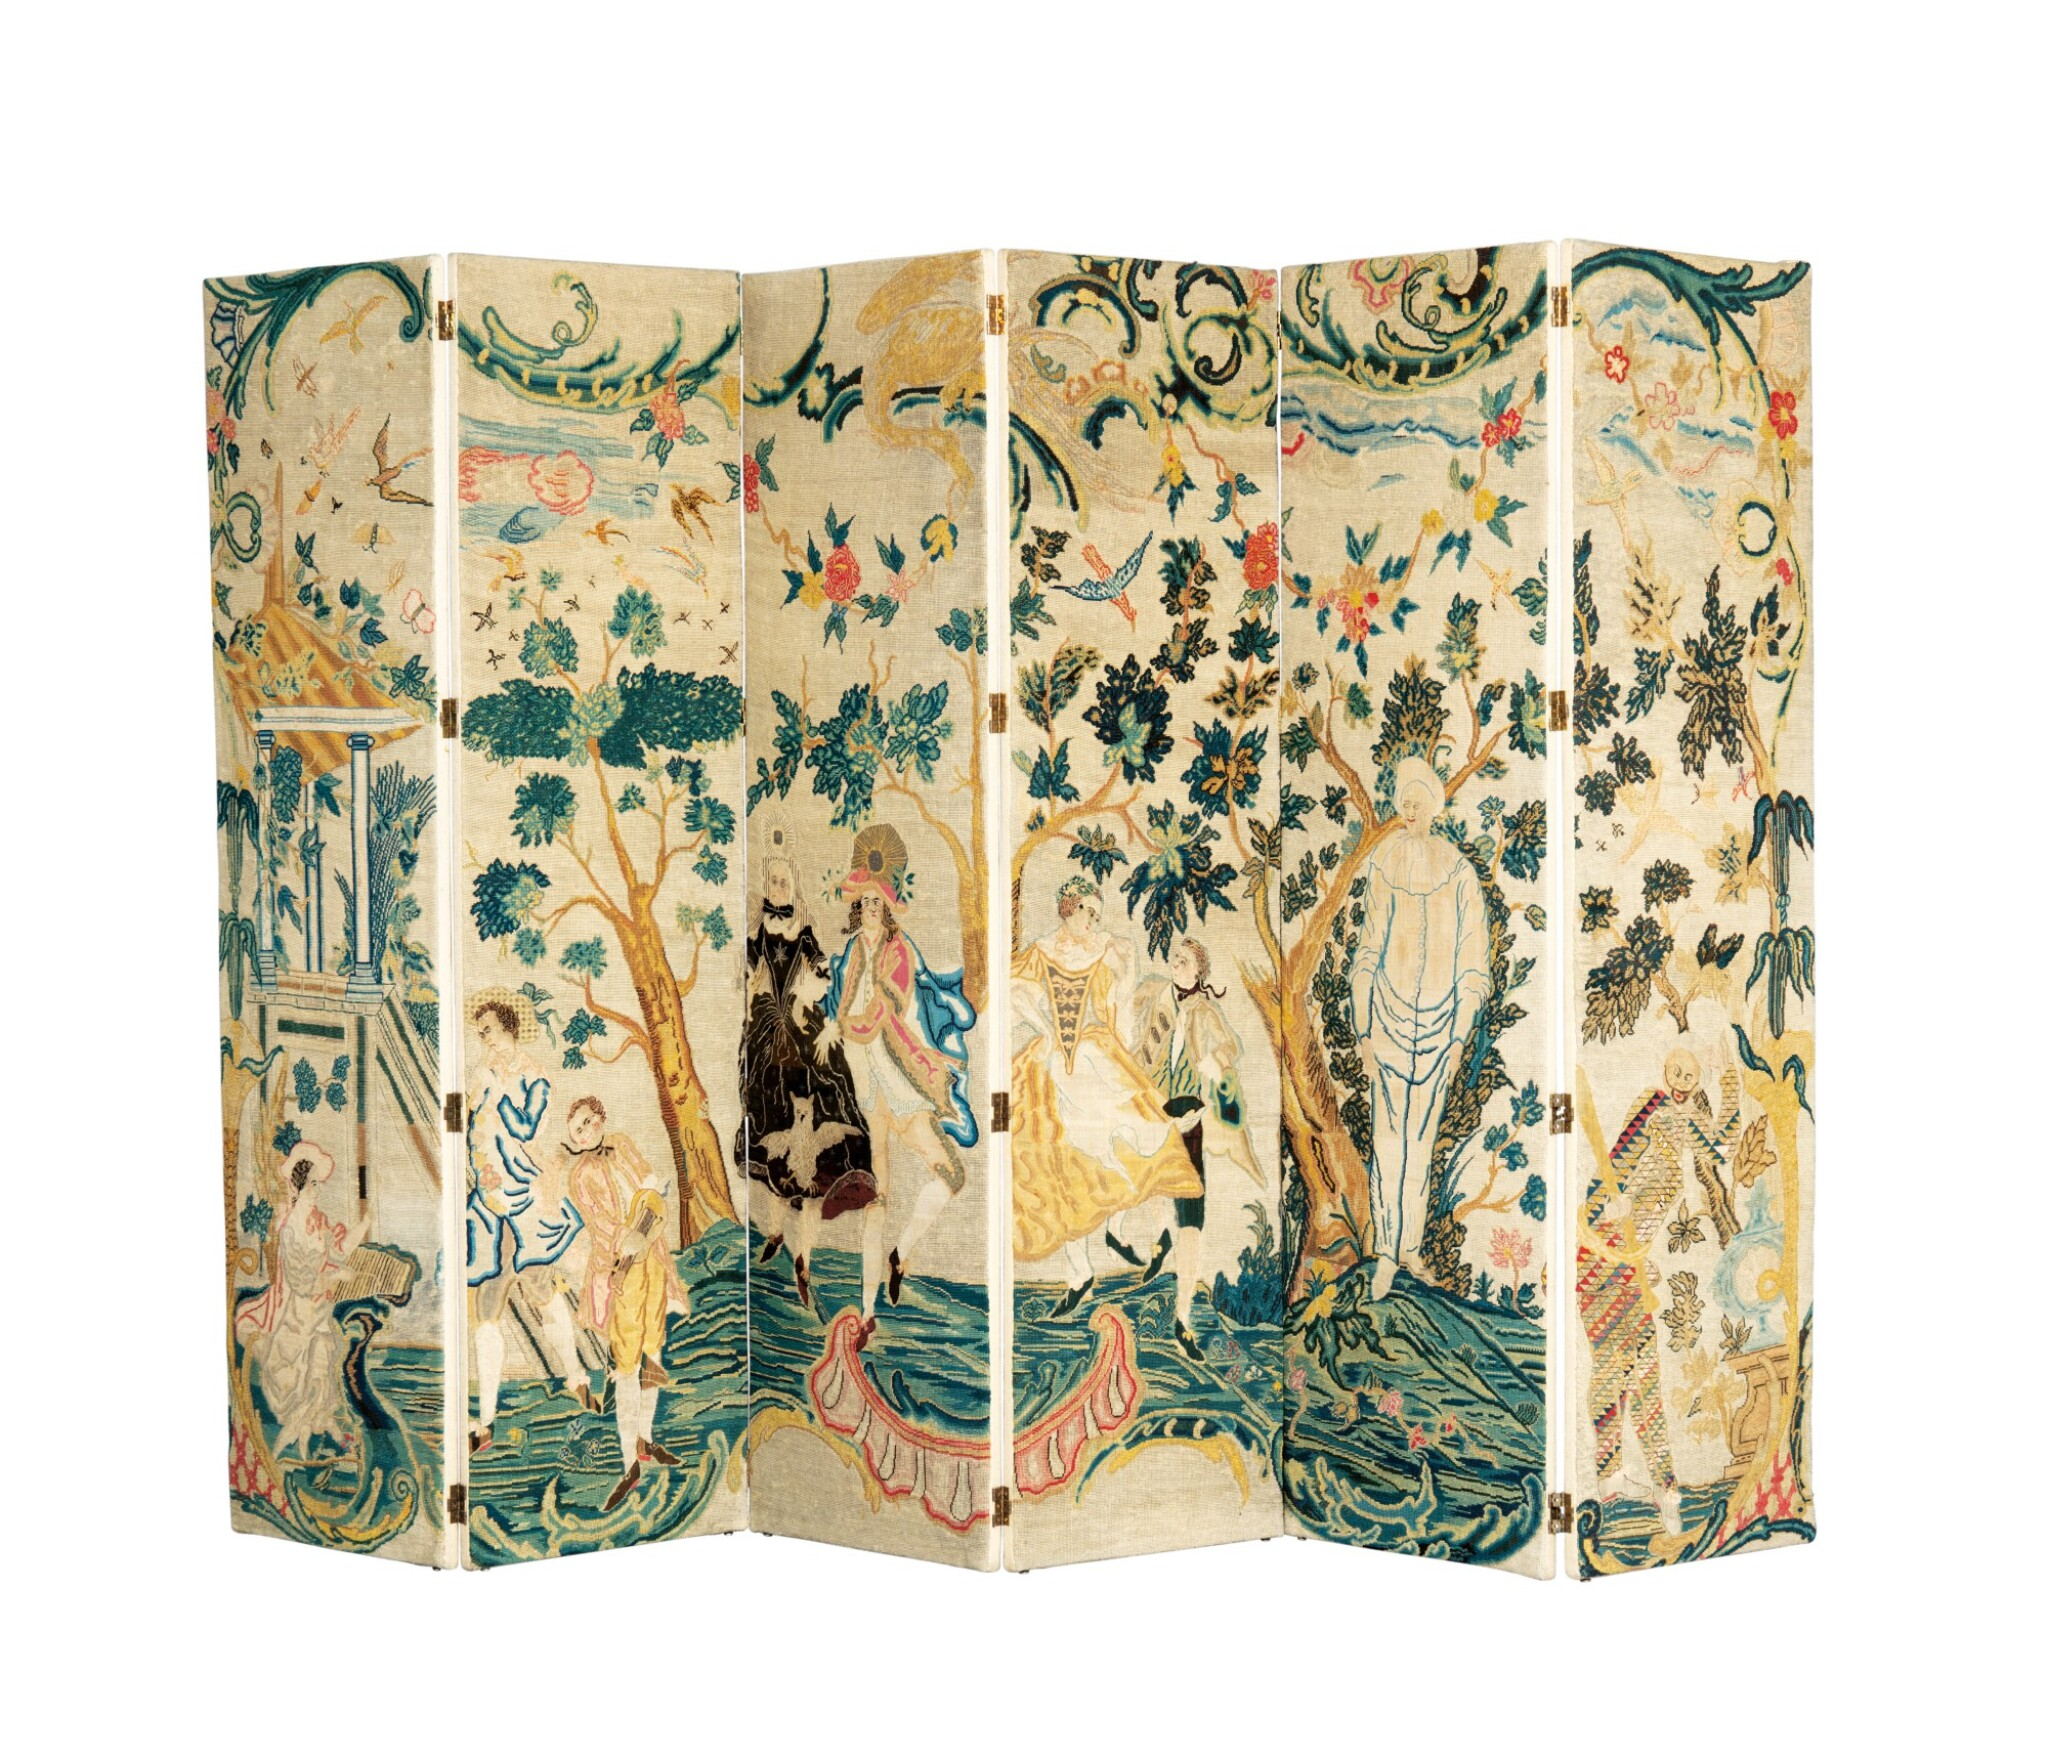 View 1 of Lot 45. A NEEDLEPOINT SIX-LEAVES FOLDING SCREEN, 18TH CENTURY [PARAVENT À SIX FEUILLES EN BRODERIE AU GROS POINT ET PETIT POINT, XVIIIE SIÈCLE].